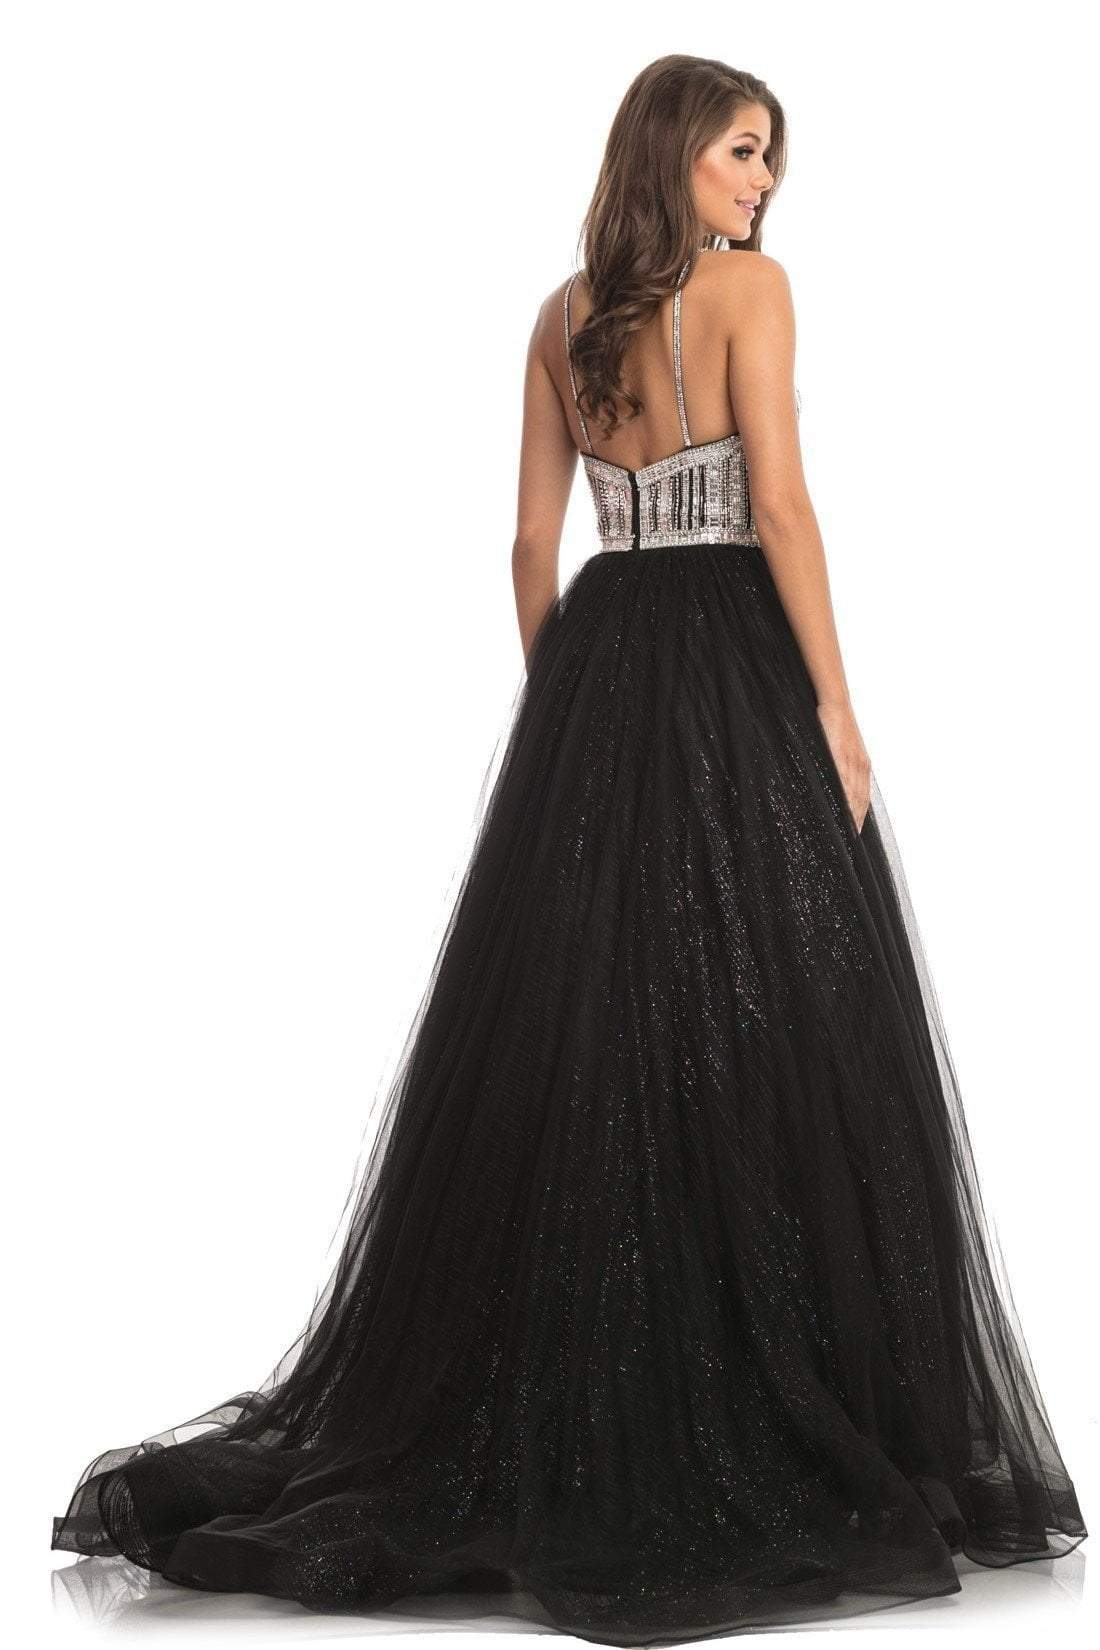 Johnathan Kayne - 9067 Sleeveless Sparkly Glitter Mesh A-Line Gown In Black and Silver